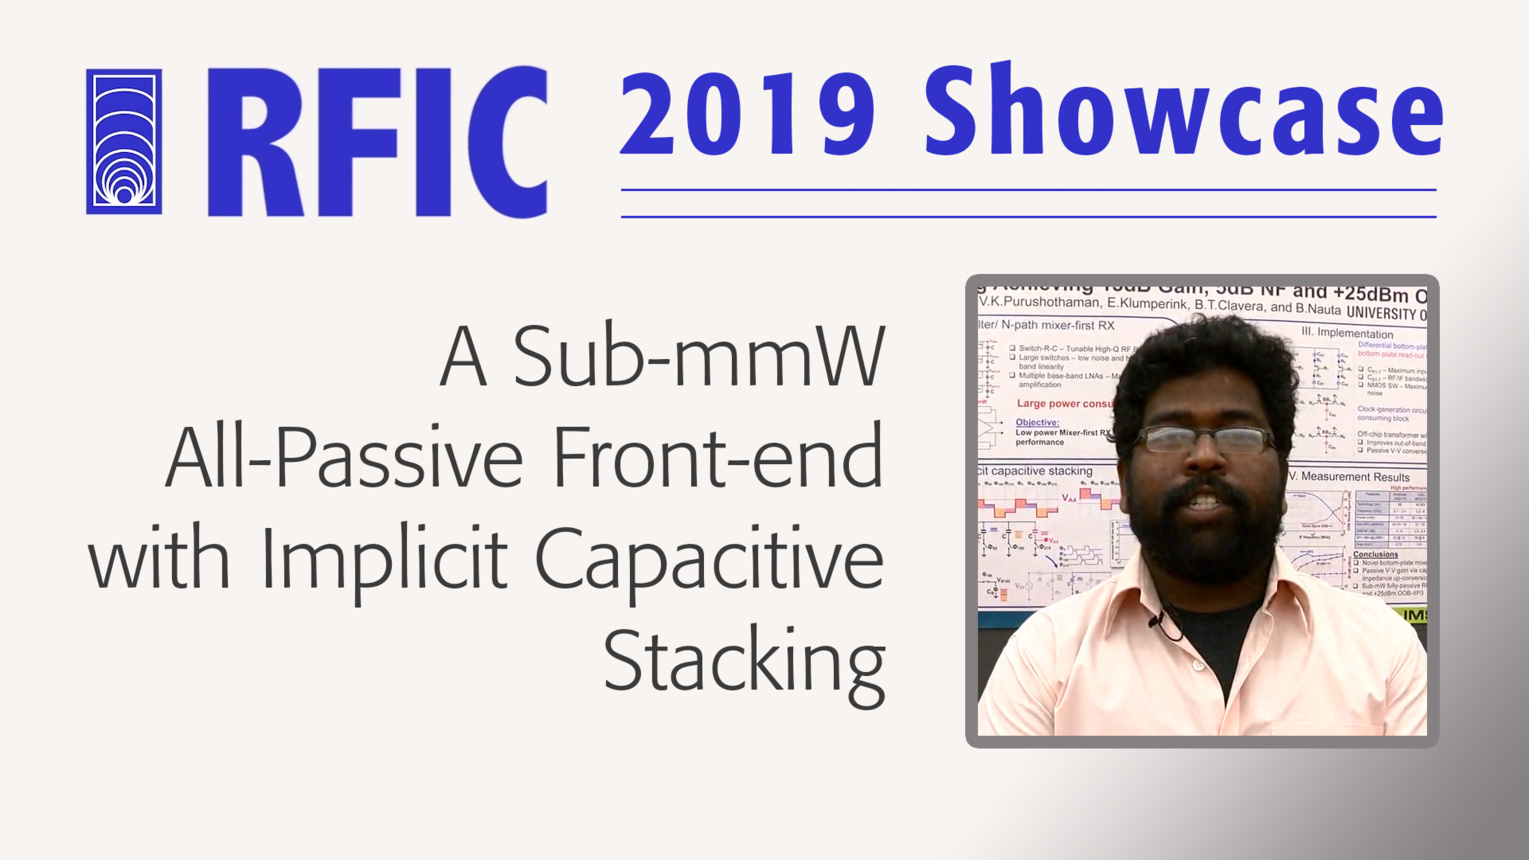 A Sub-mmW All-Passive Front-end with Implicit Capacitive Stacking - Vijaya K. Purushothaman - RFIC 2019 Showcase